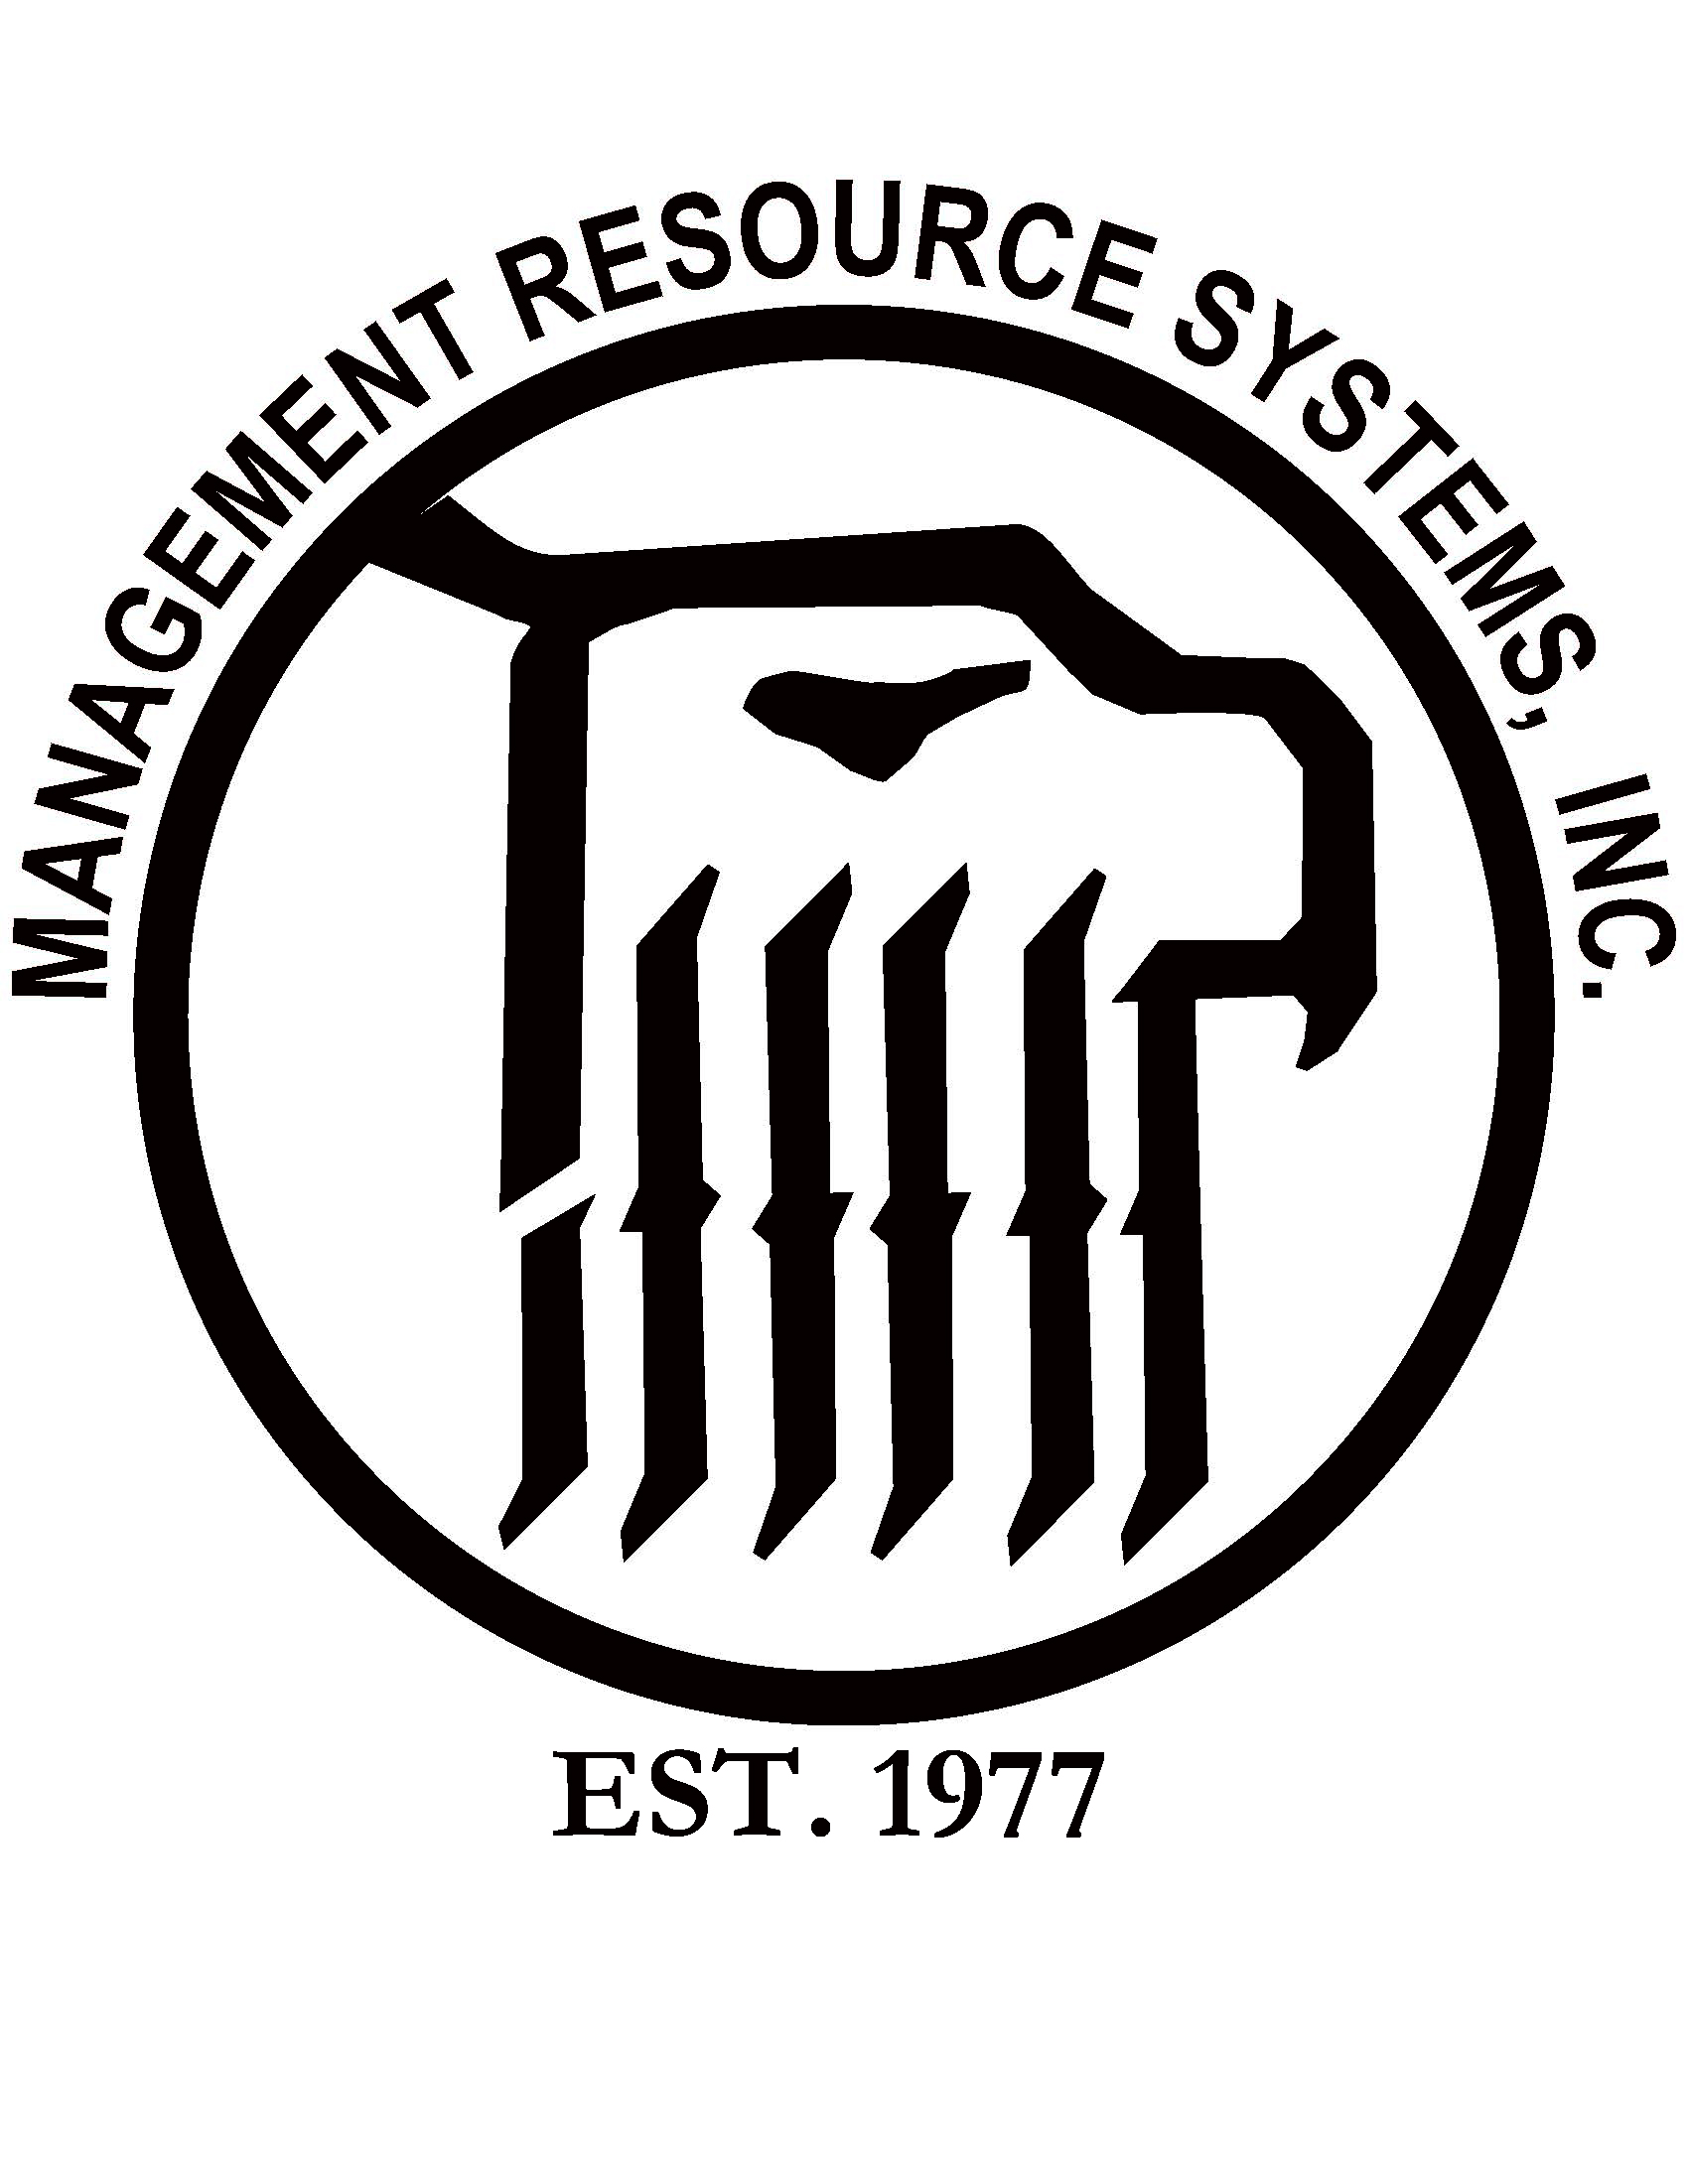 Management Resource Systems